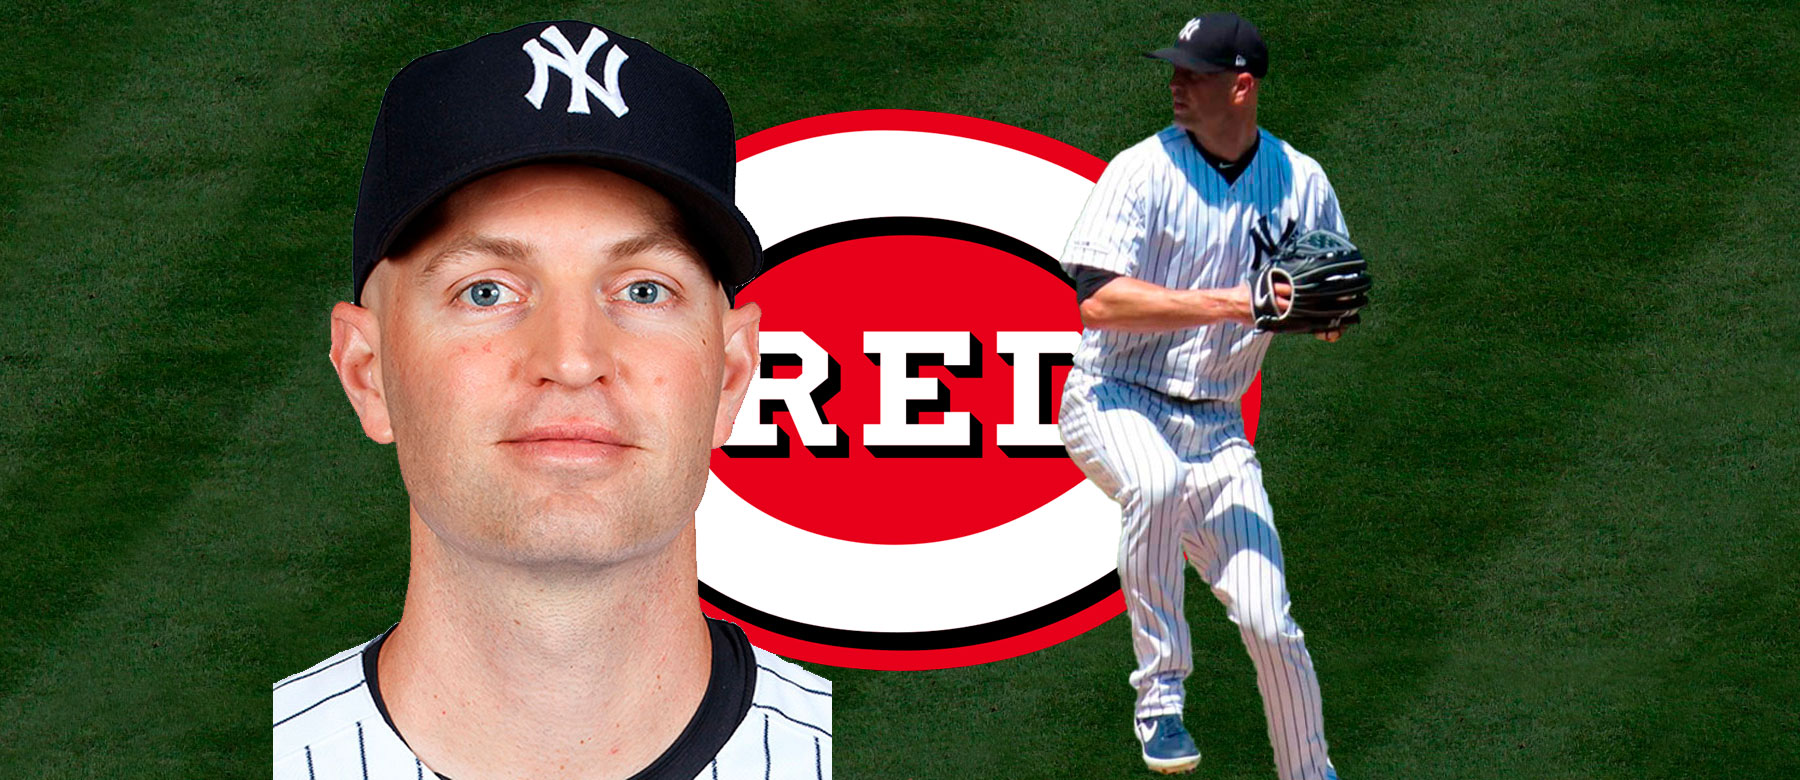 Can the Reds upgrade their rotation by trading for J.A. Happ?